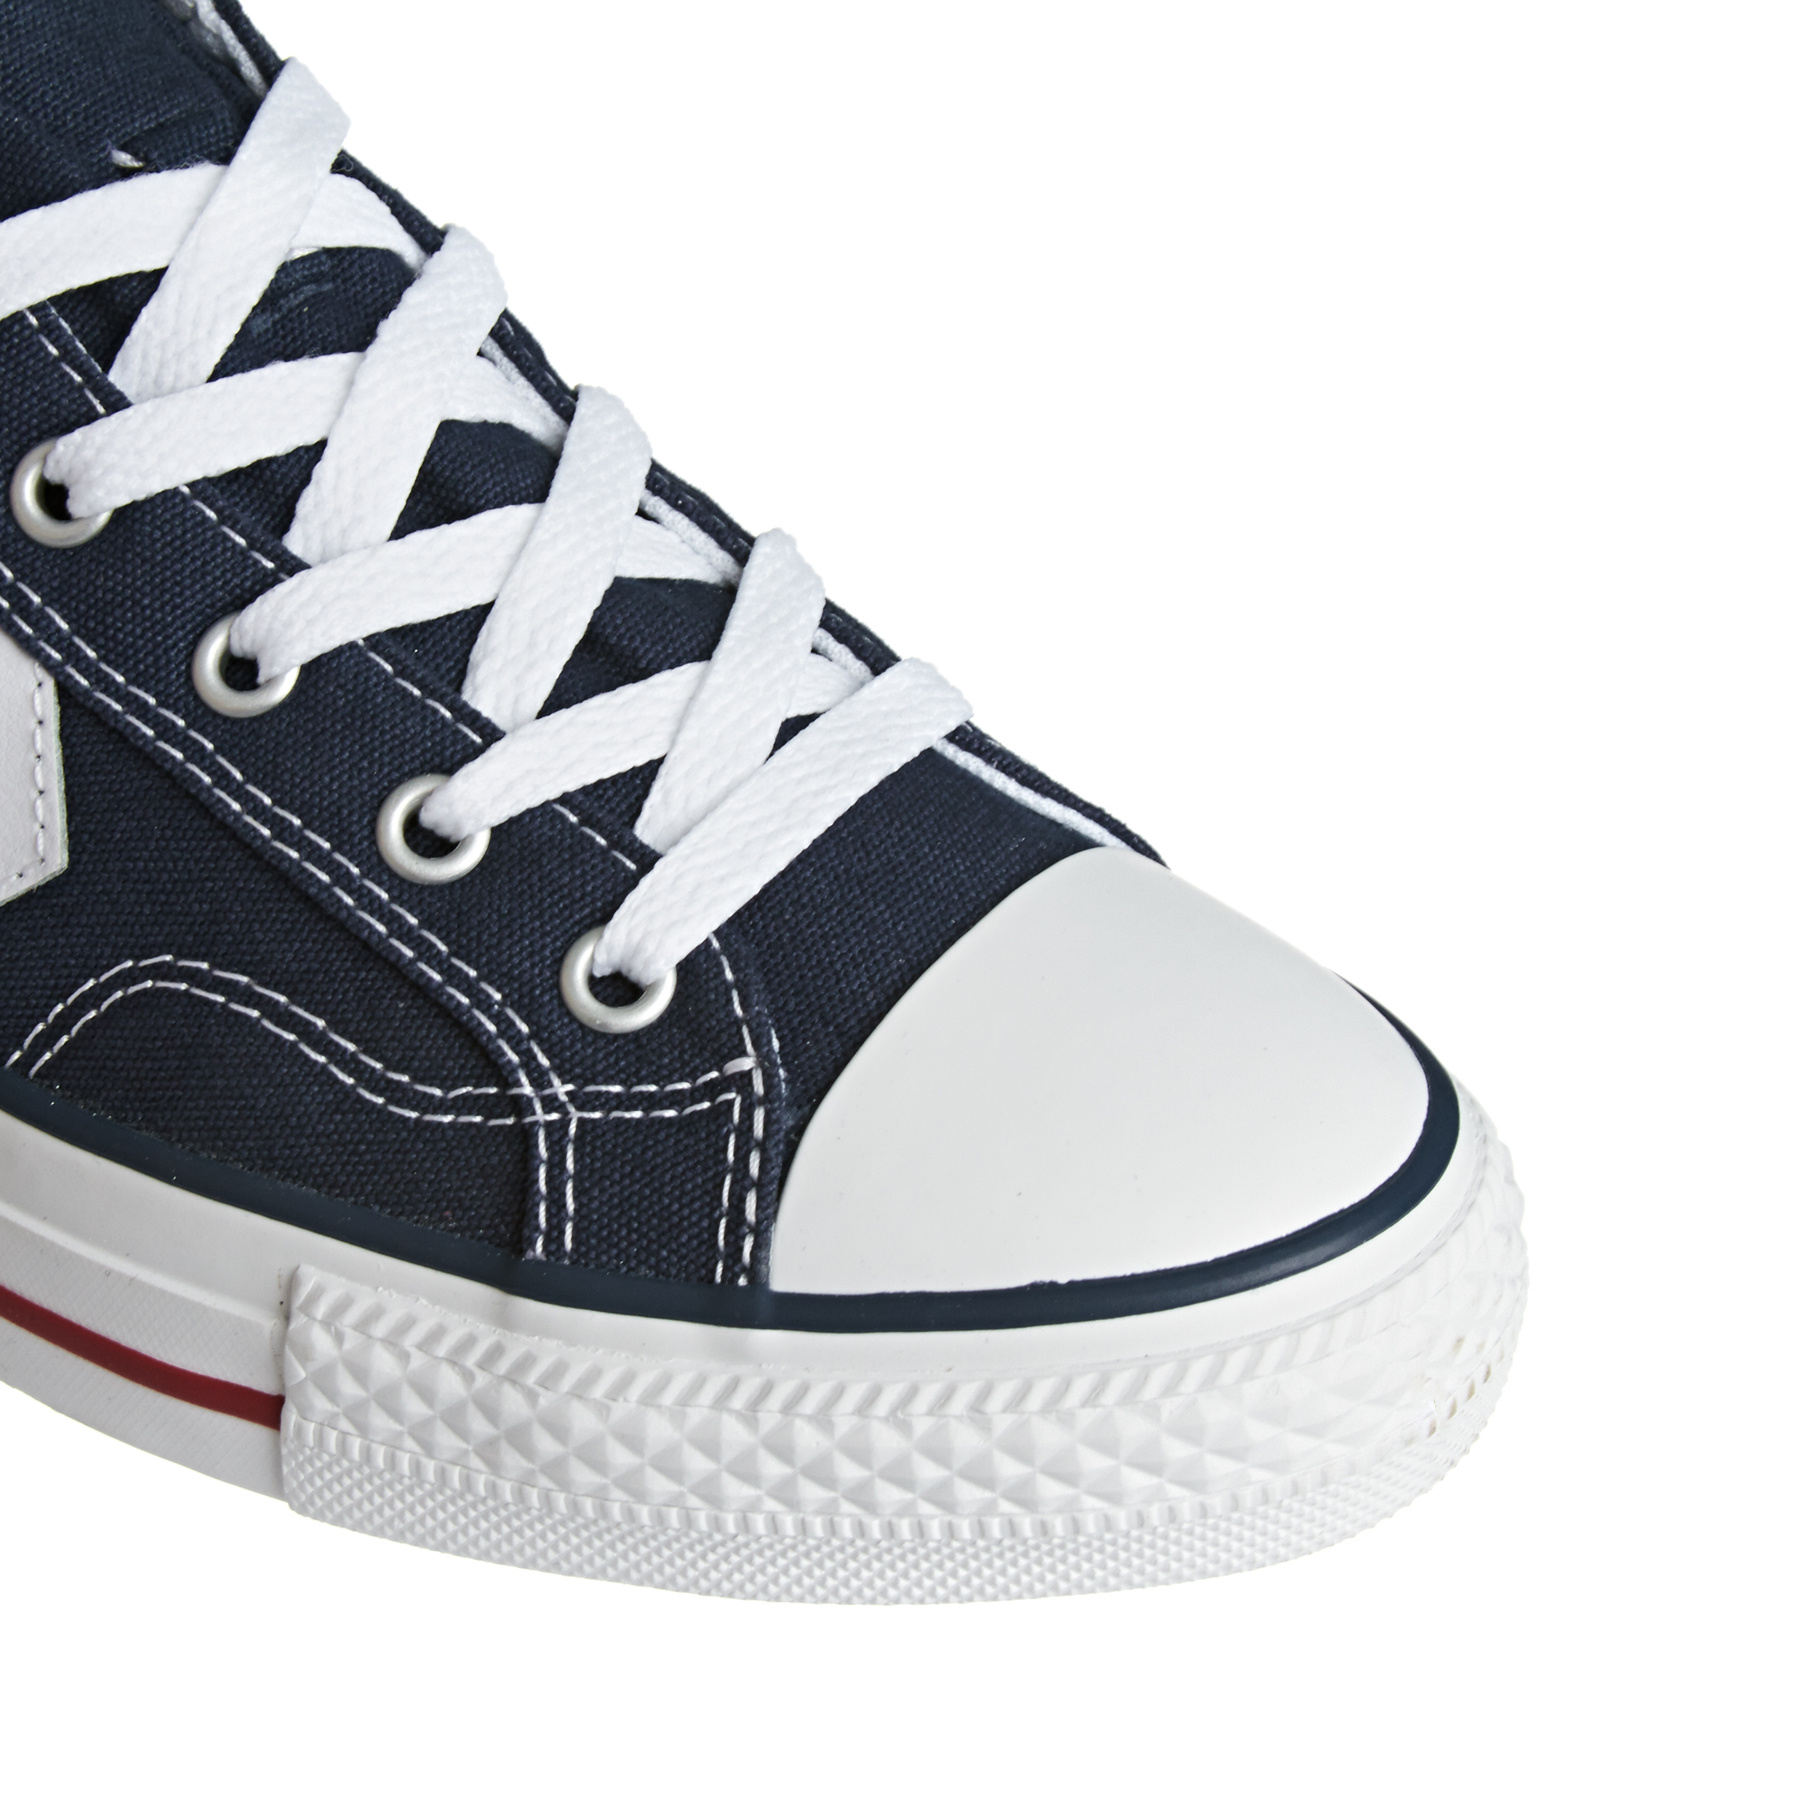 Converse CONS Remastered Star Player OX Shoes | Kostenlose